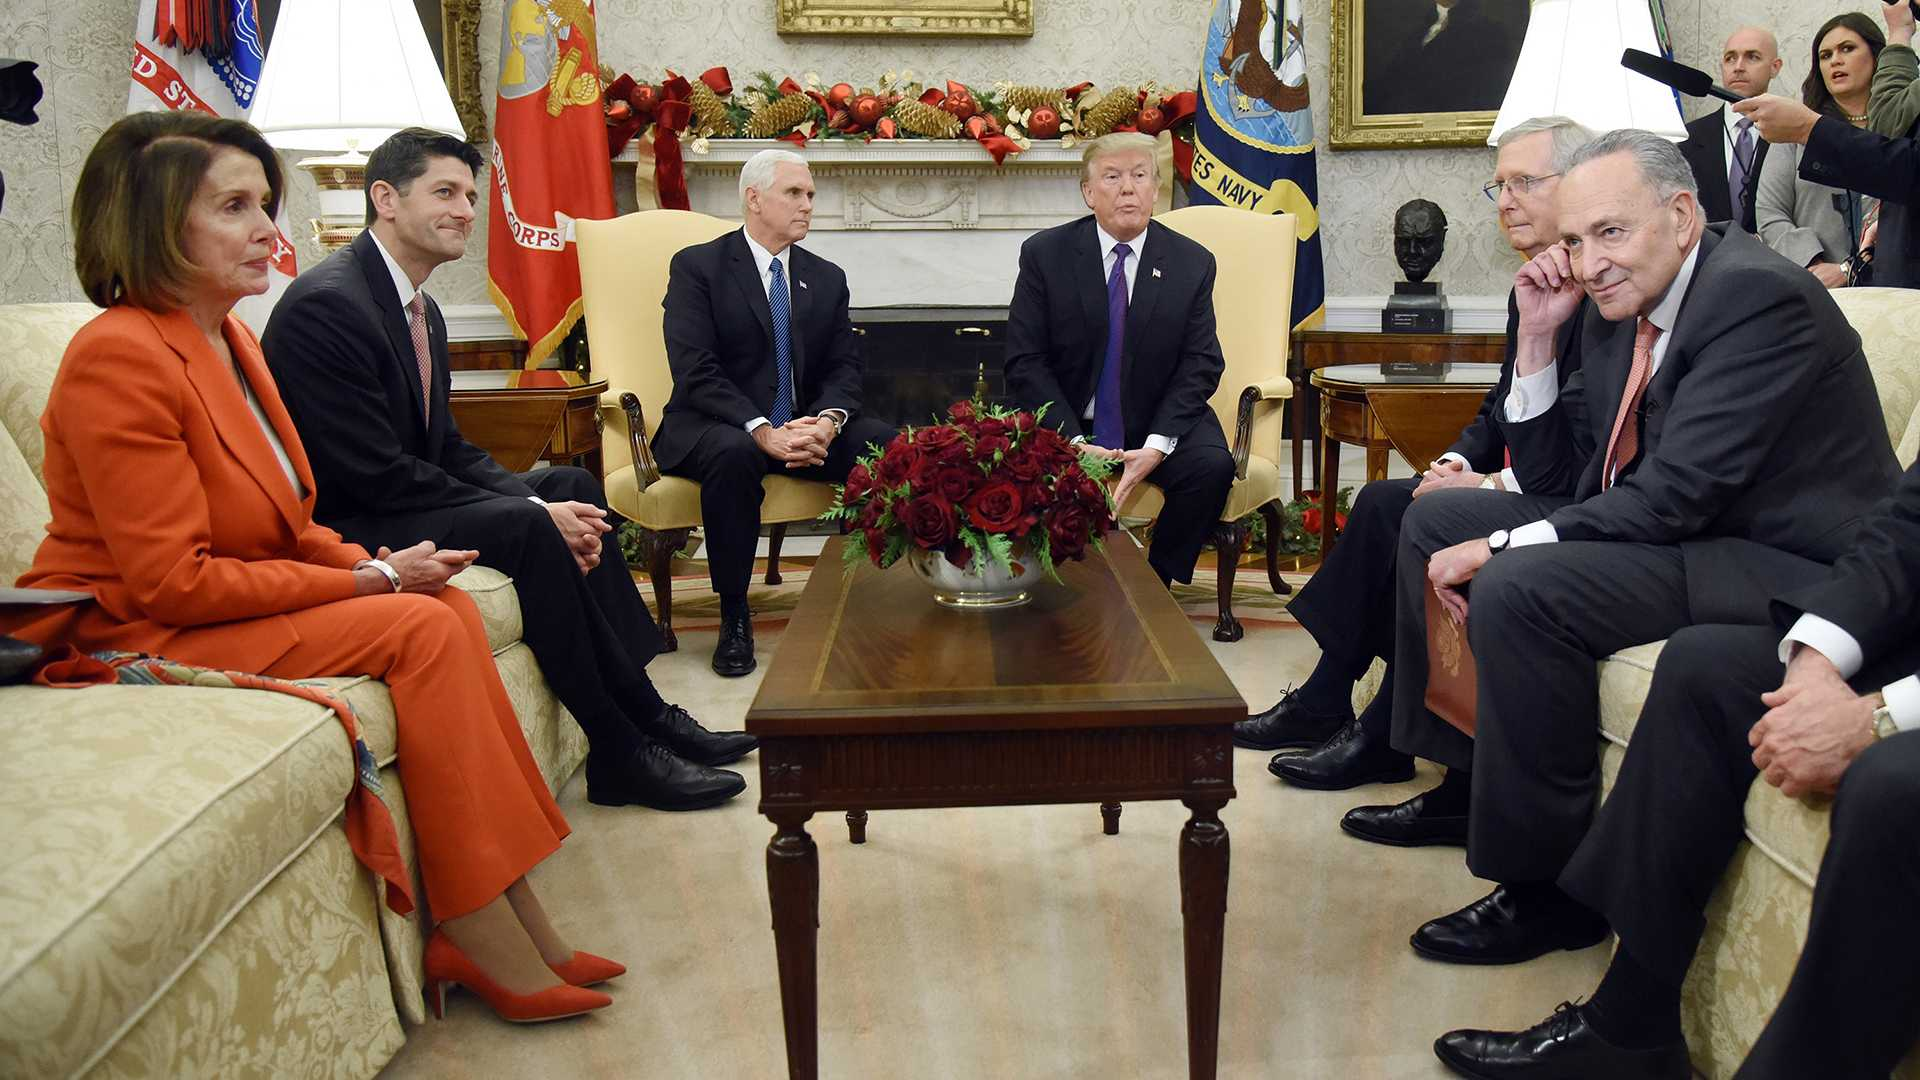 U.S. President Donald Trump and Vice President Mike Pence look on during a meeting with Congressional leadership including House Minority Leader Rep. Nancy Pelosi (D-Calif.), House Speaker Paul Ryan (R-Wis.), Senate Majority Leader Mitch McConnell, and Sen. Charles Schumer (D-NY) in the Oval Office of the White House Thursday, Dec. 7, 2017 in Washington, D.C.  (Olivier Douliery/Abaca Press/TNS)